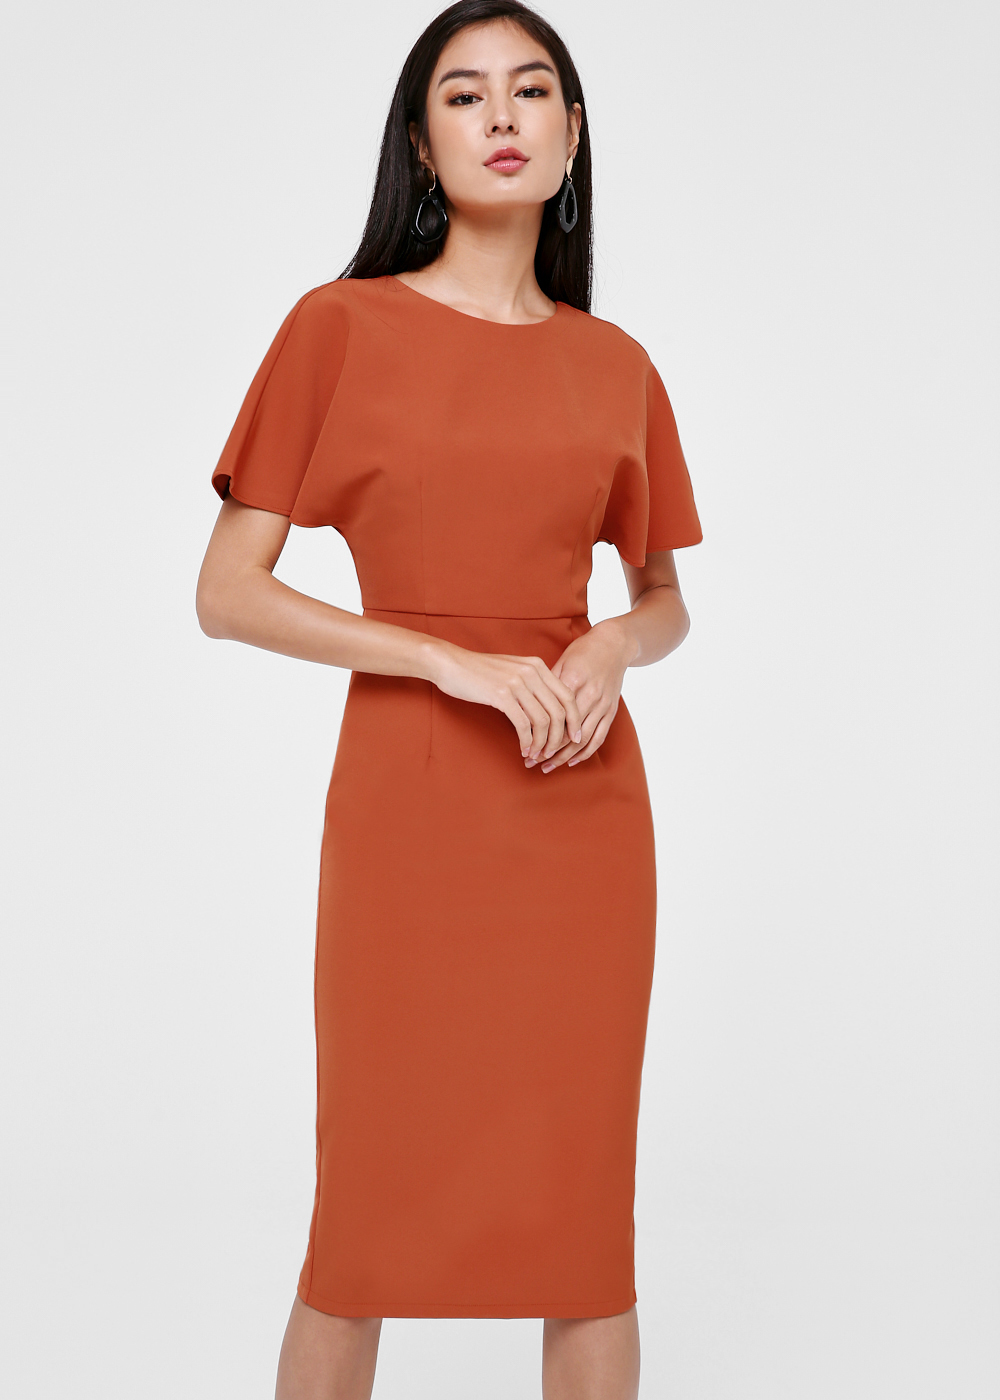 Thoren Flutter Sleeve Pencil Dress